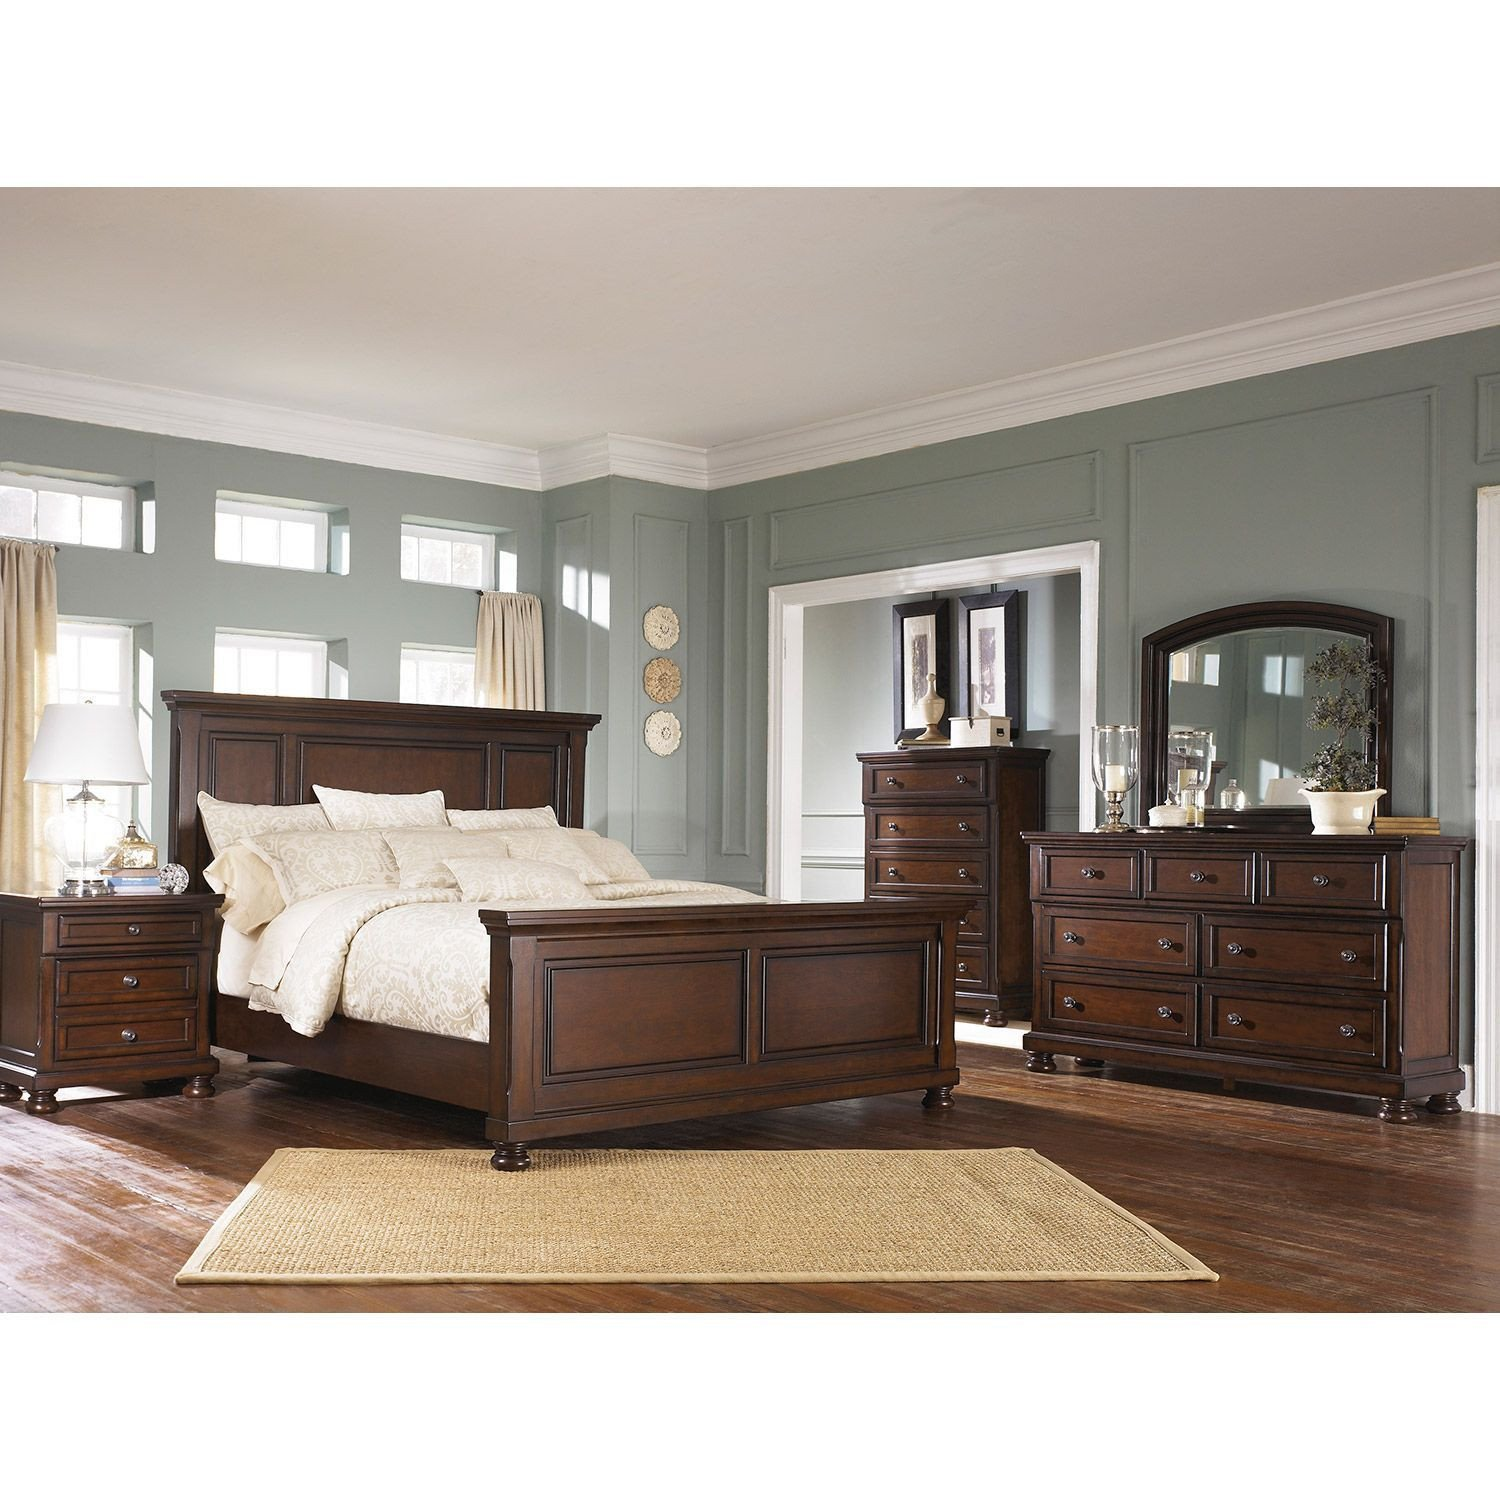 Ashley Furniture Bedroom Set Price Beautiful Porter 5 Piece Bedroom Set B697 5pcset